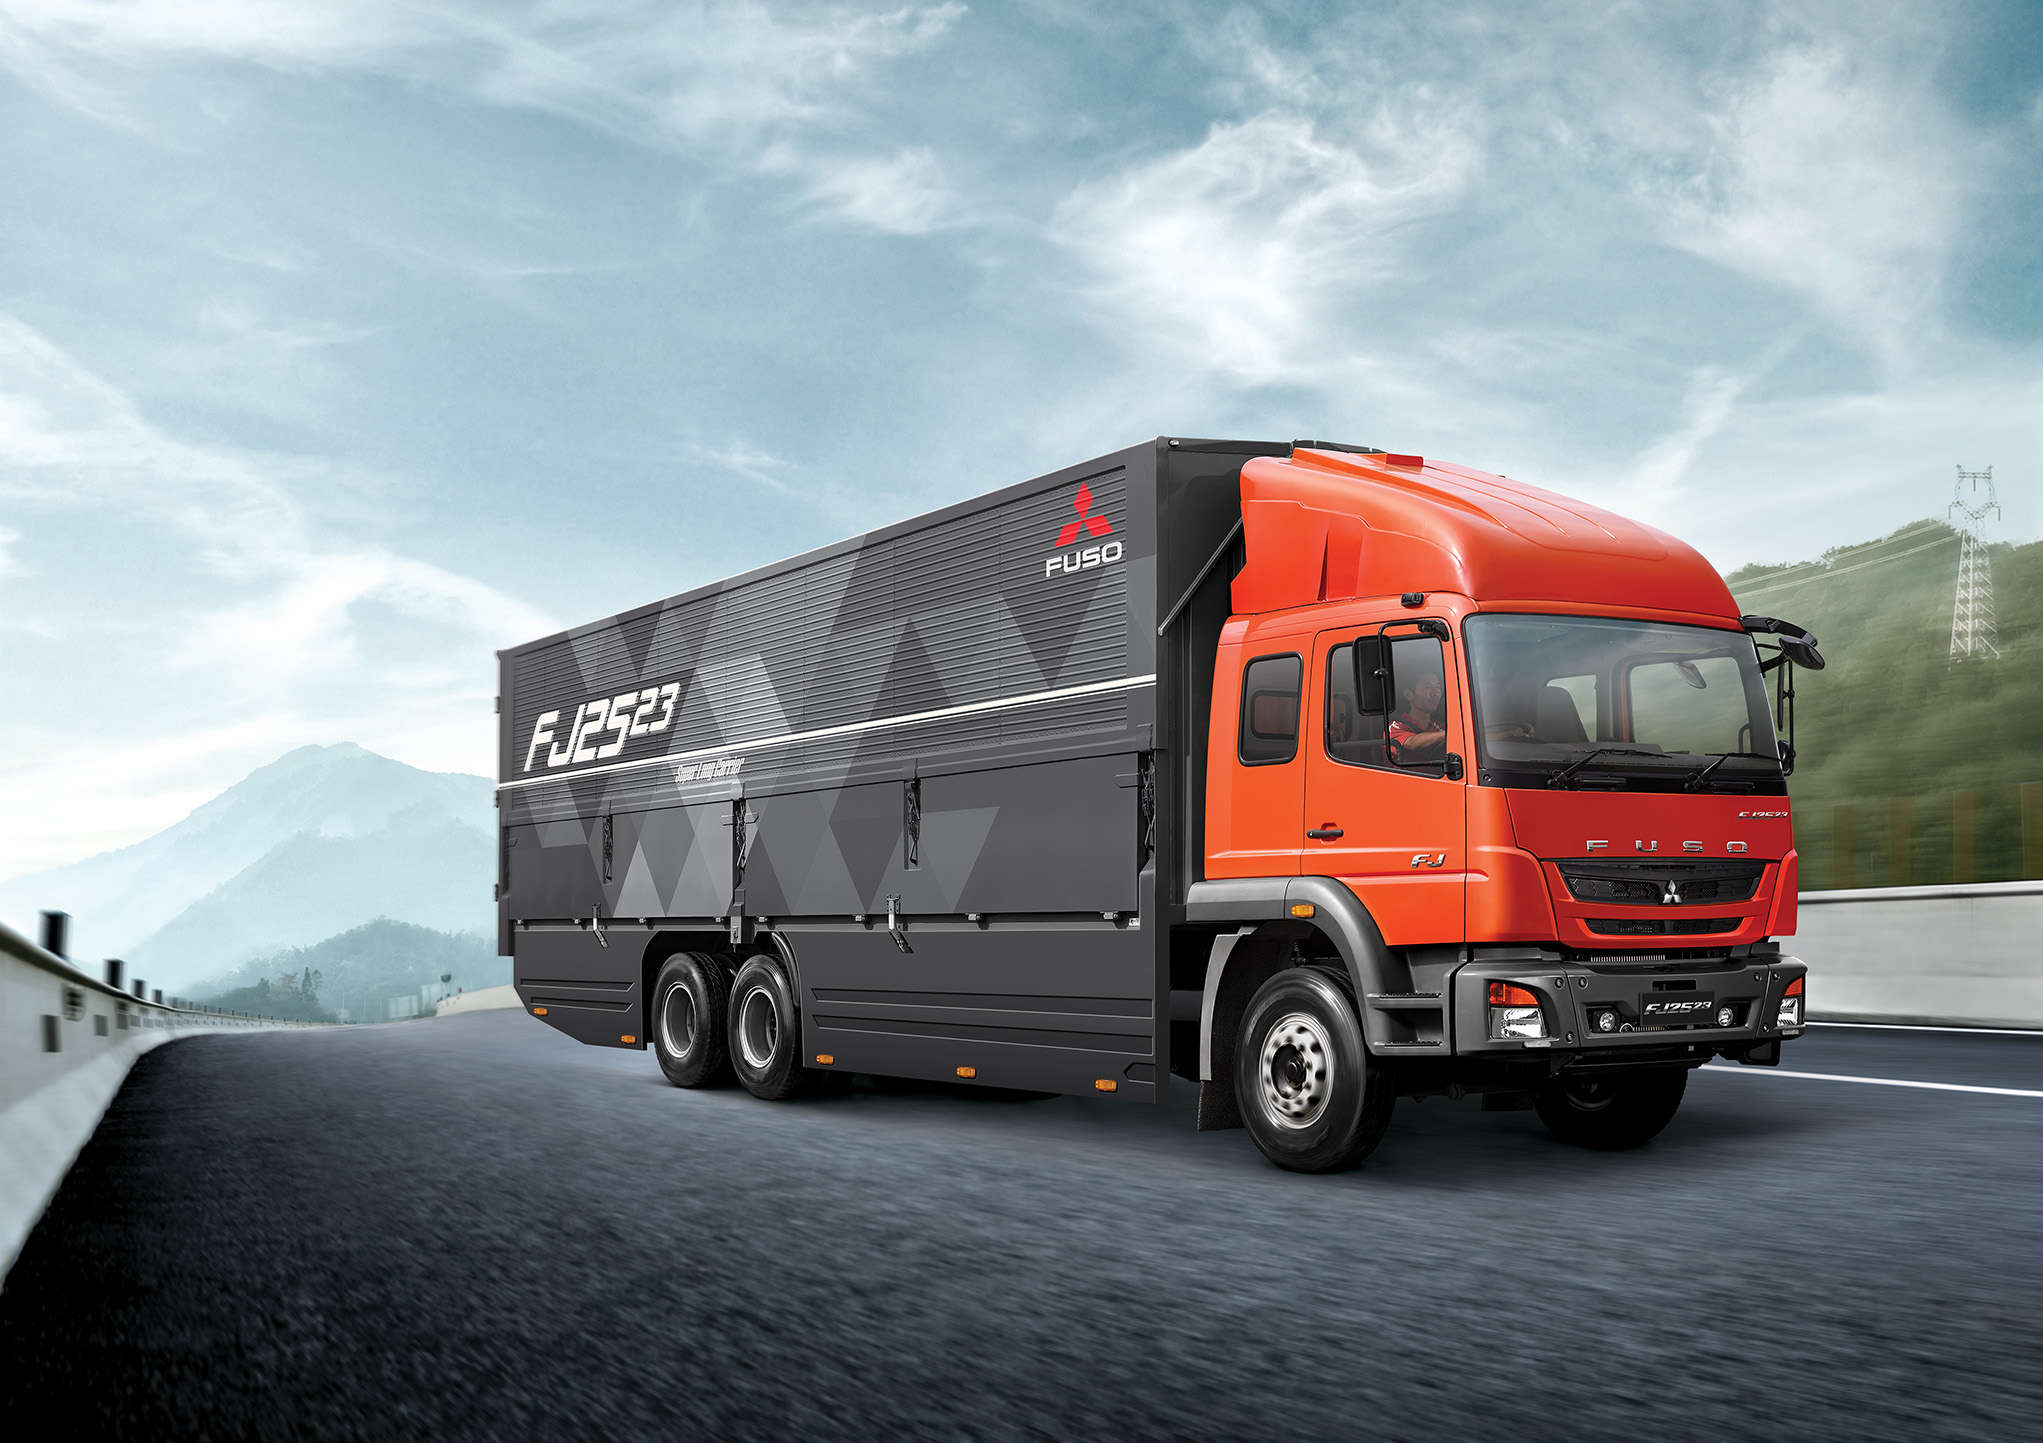 Made in India FUSO trucks launched in Indonesia - The Economic Times